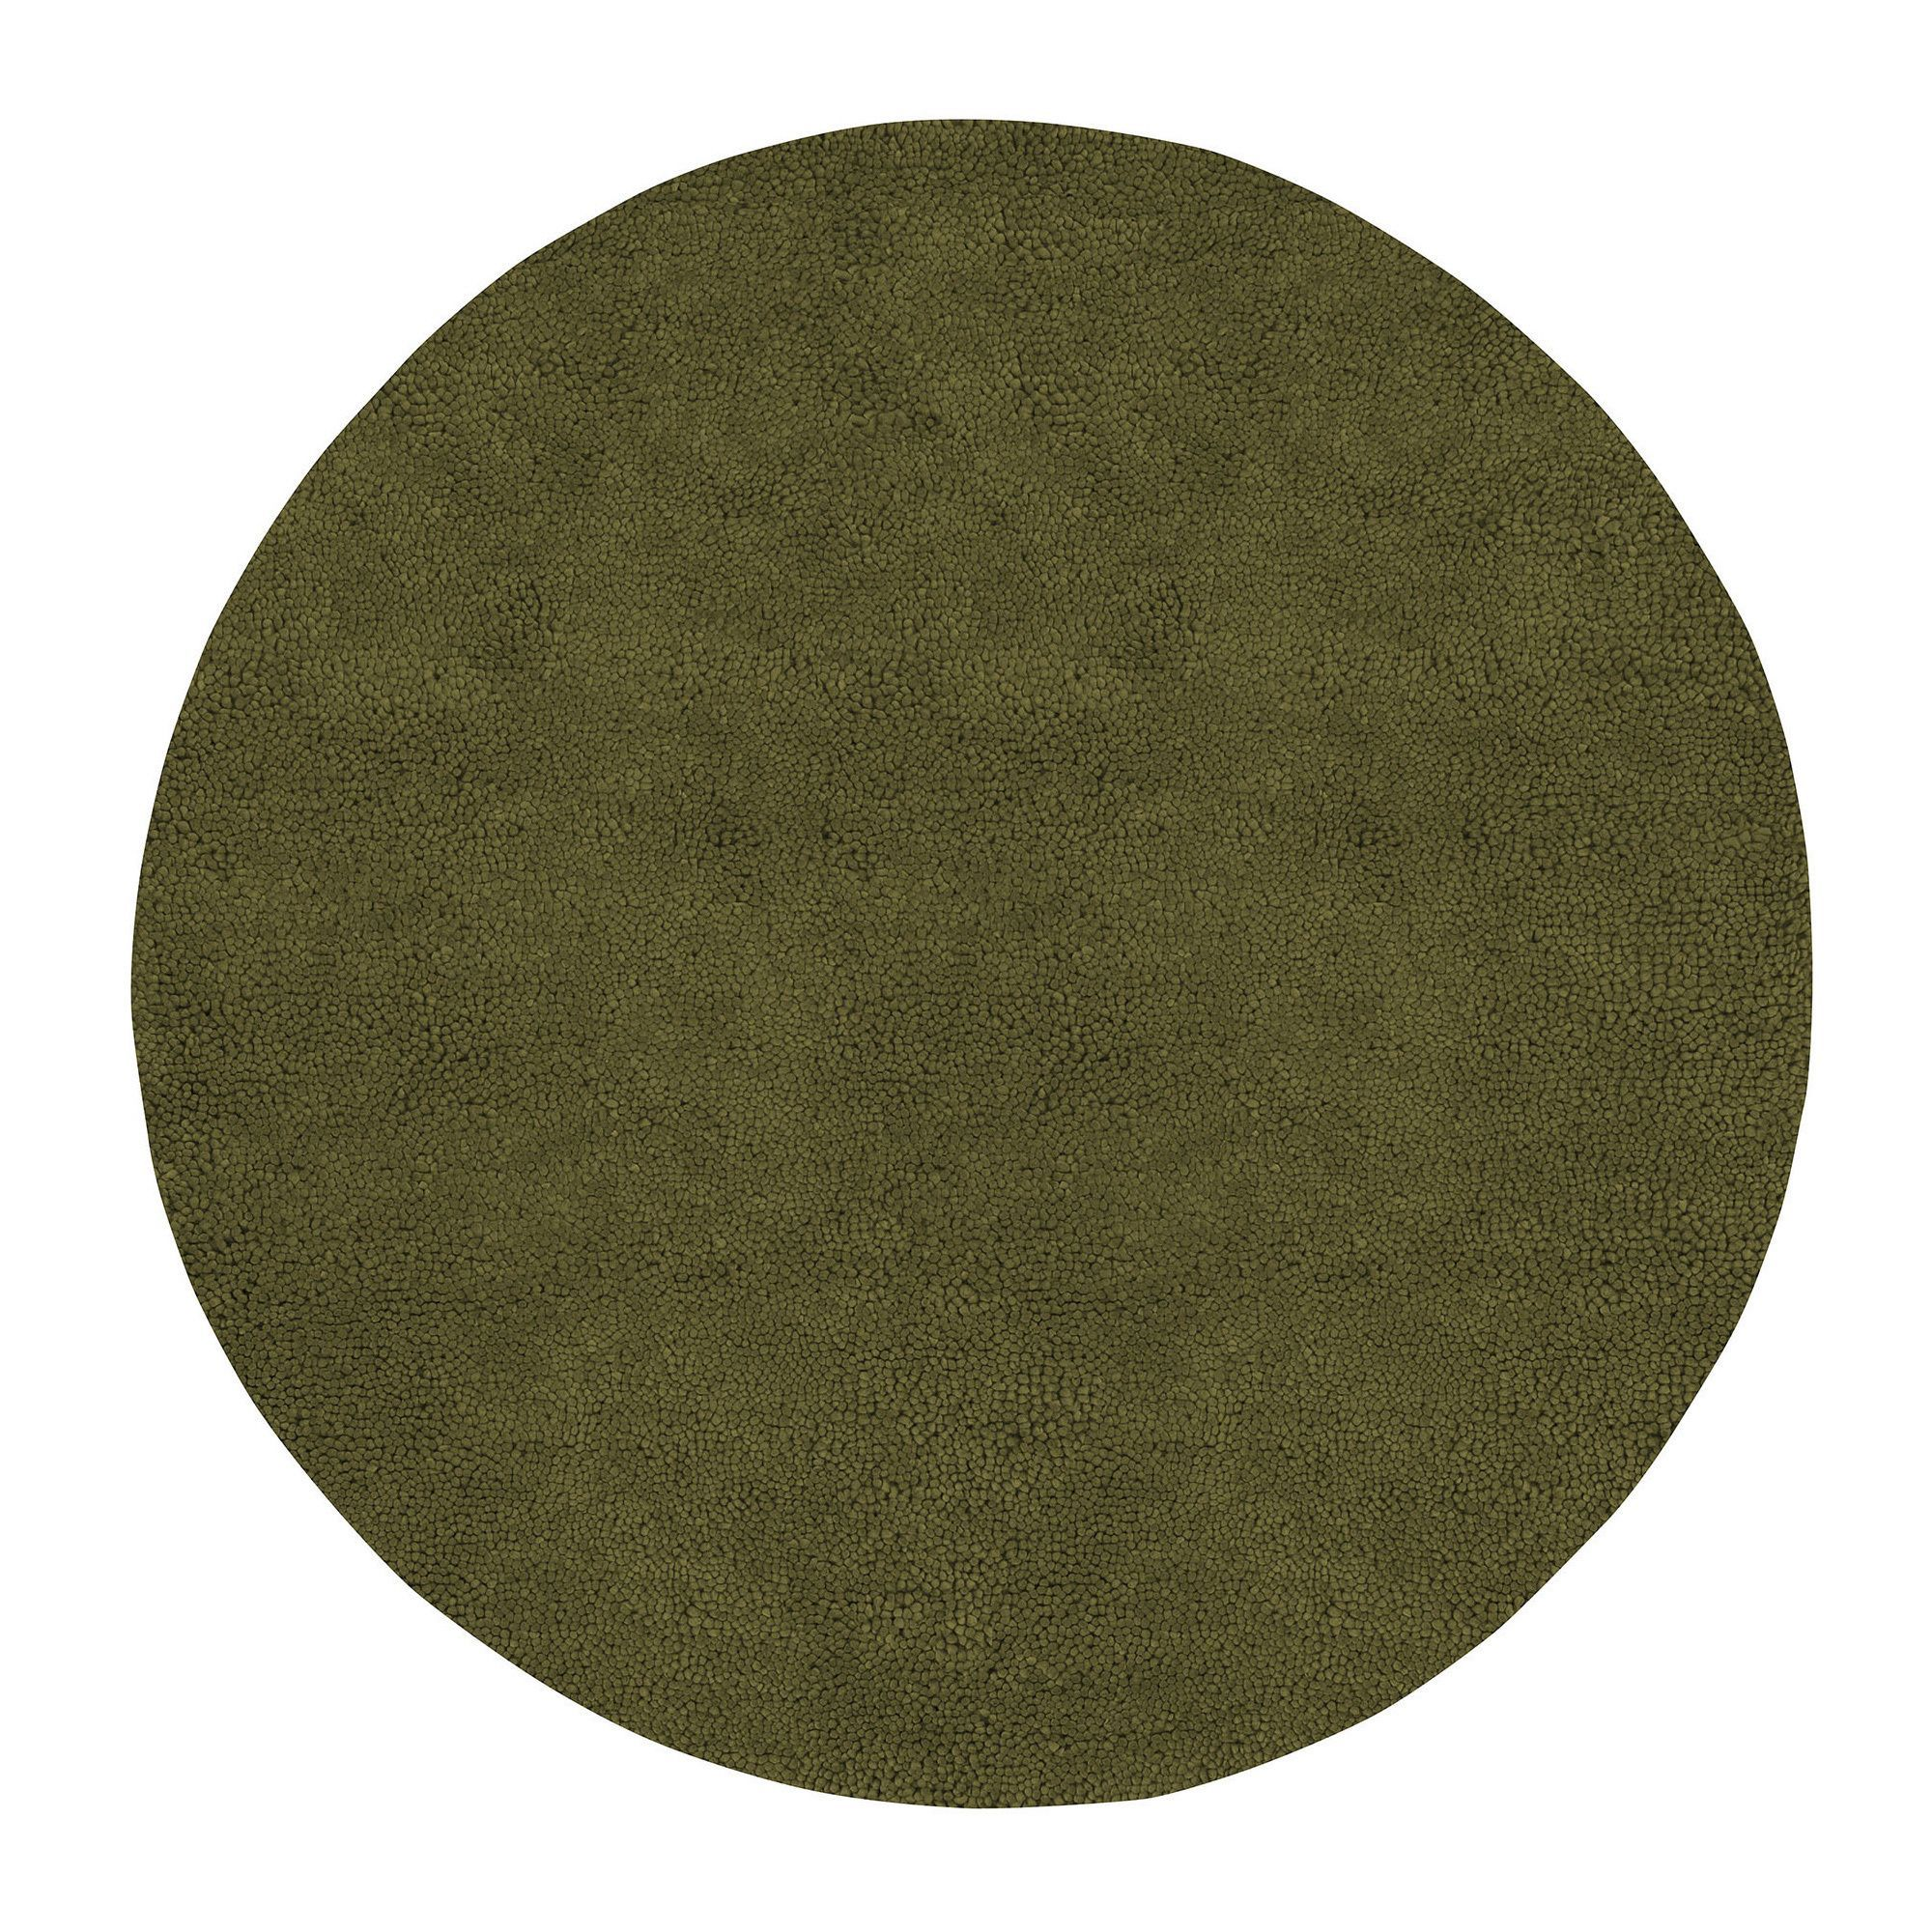 Hand-woven Holley New Zealand Felted Wool Shag Area Rug (10' Round) (Sage-(10' Round)), Green, Size 10' (Natural Fiber, Solid)